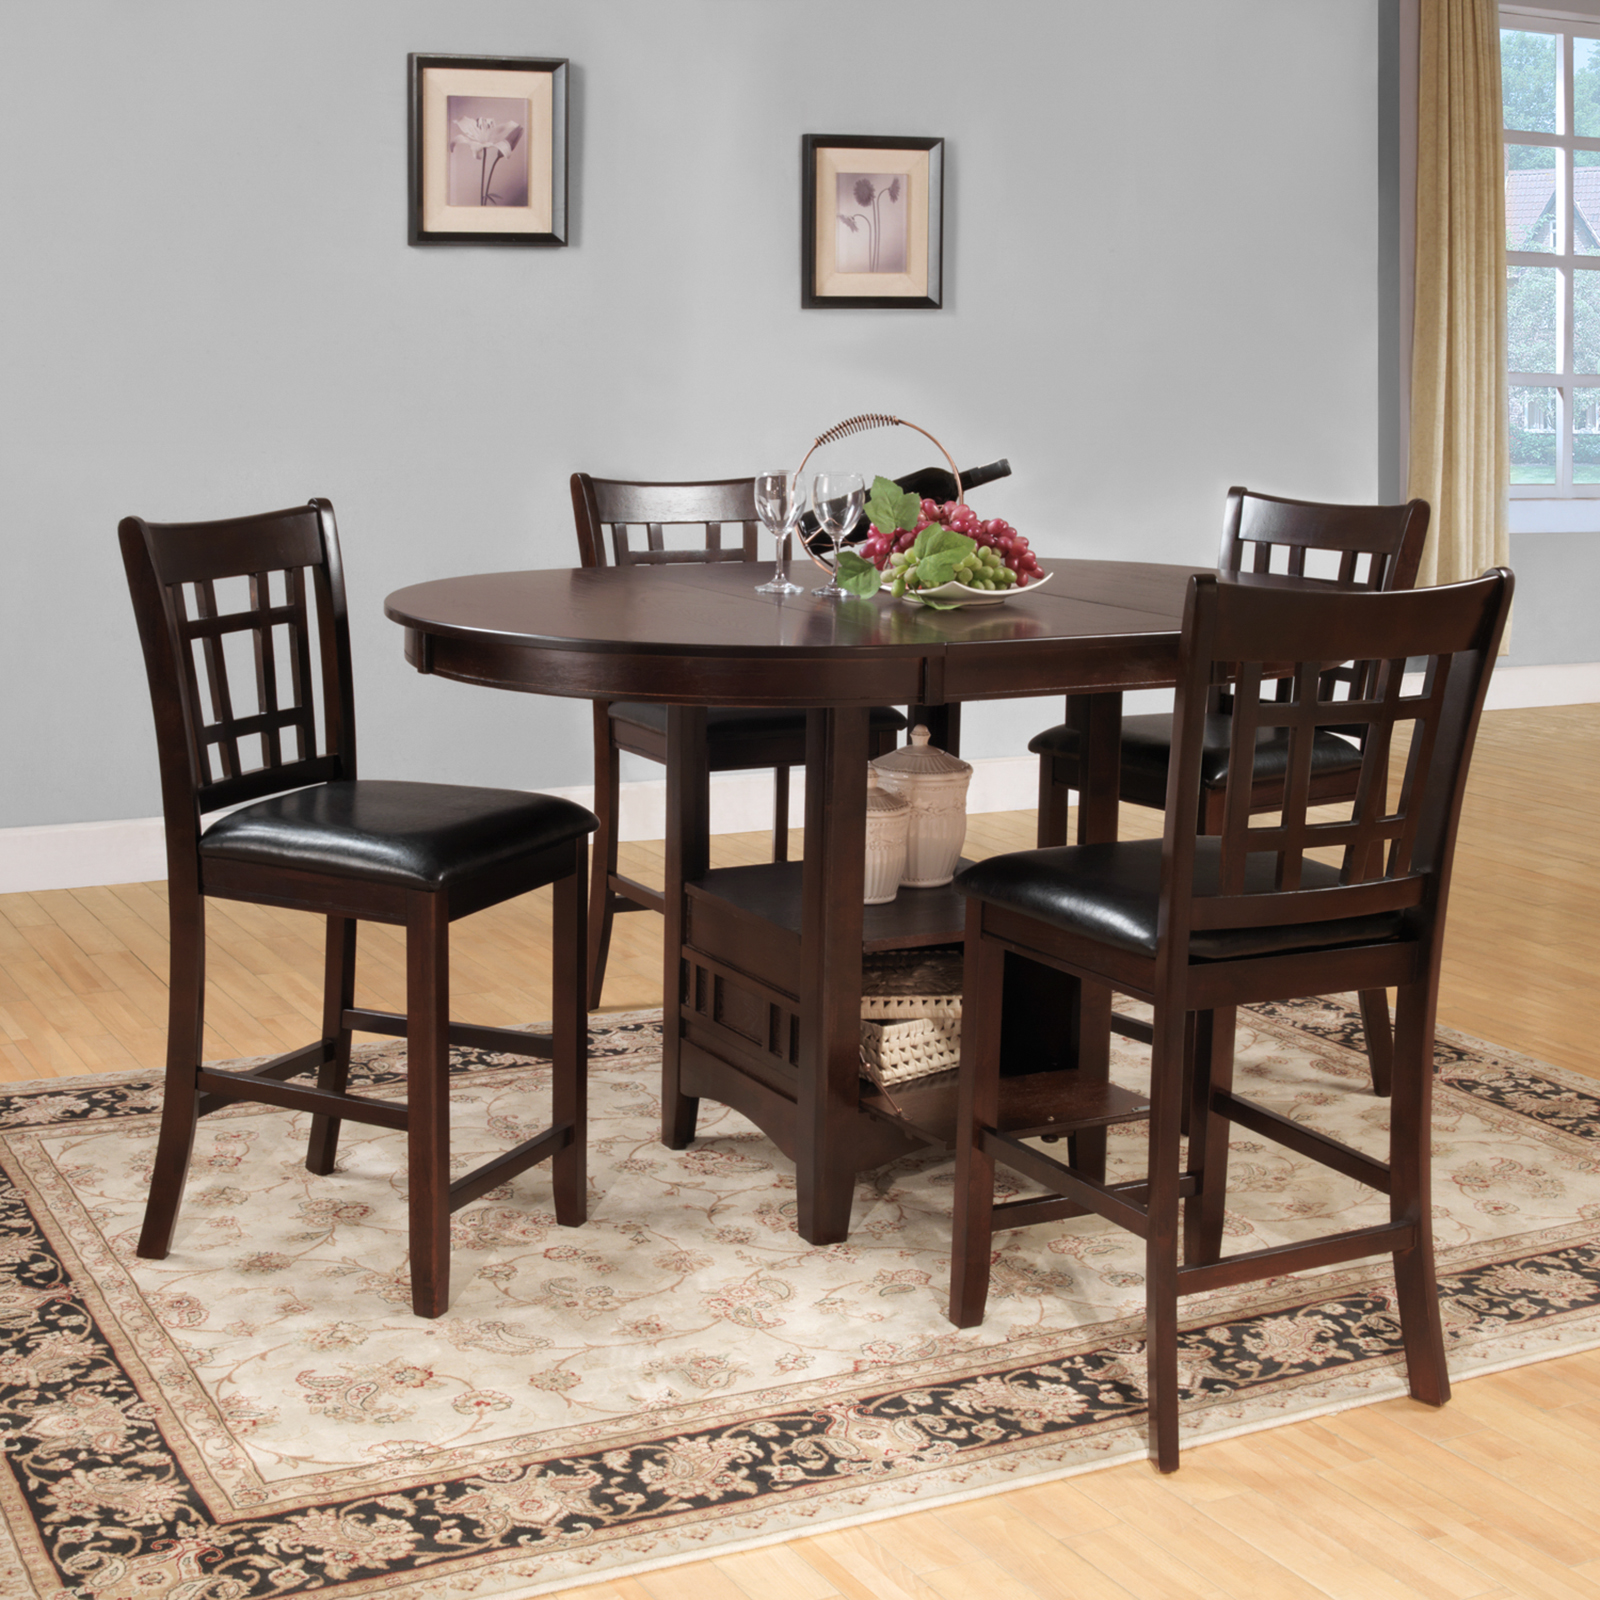 Weston home junipero 5 piece counter height dining table set cherry hayneedle